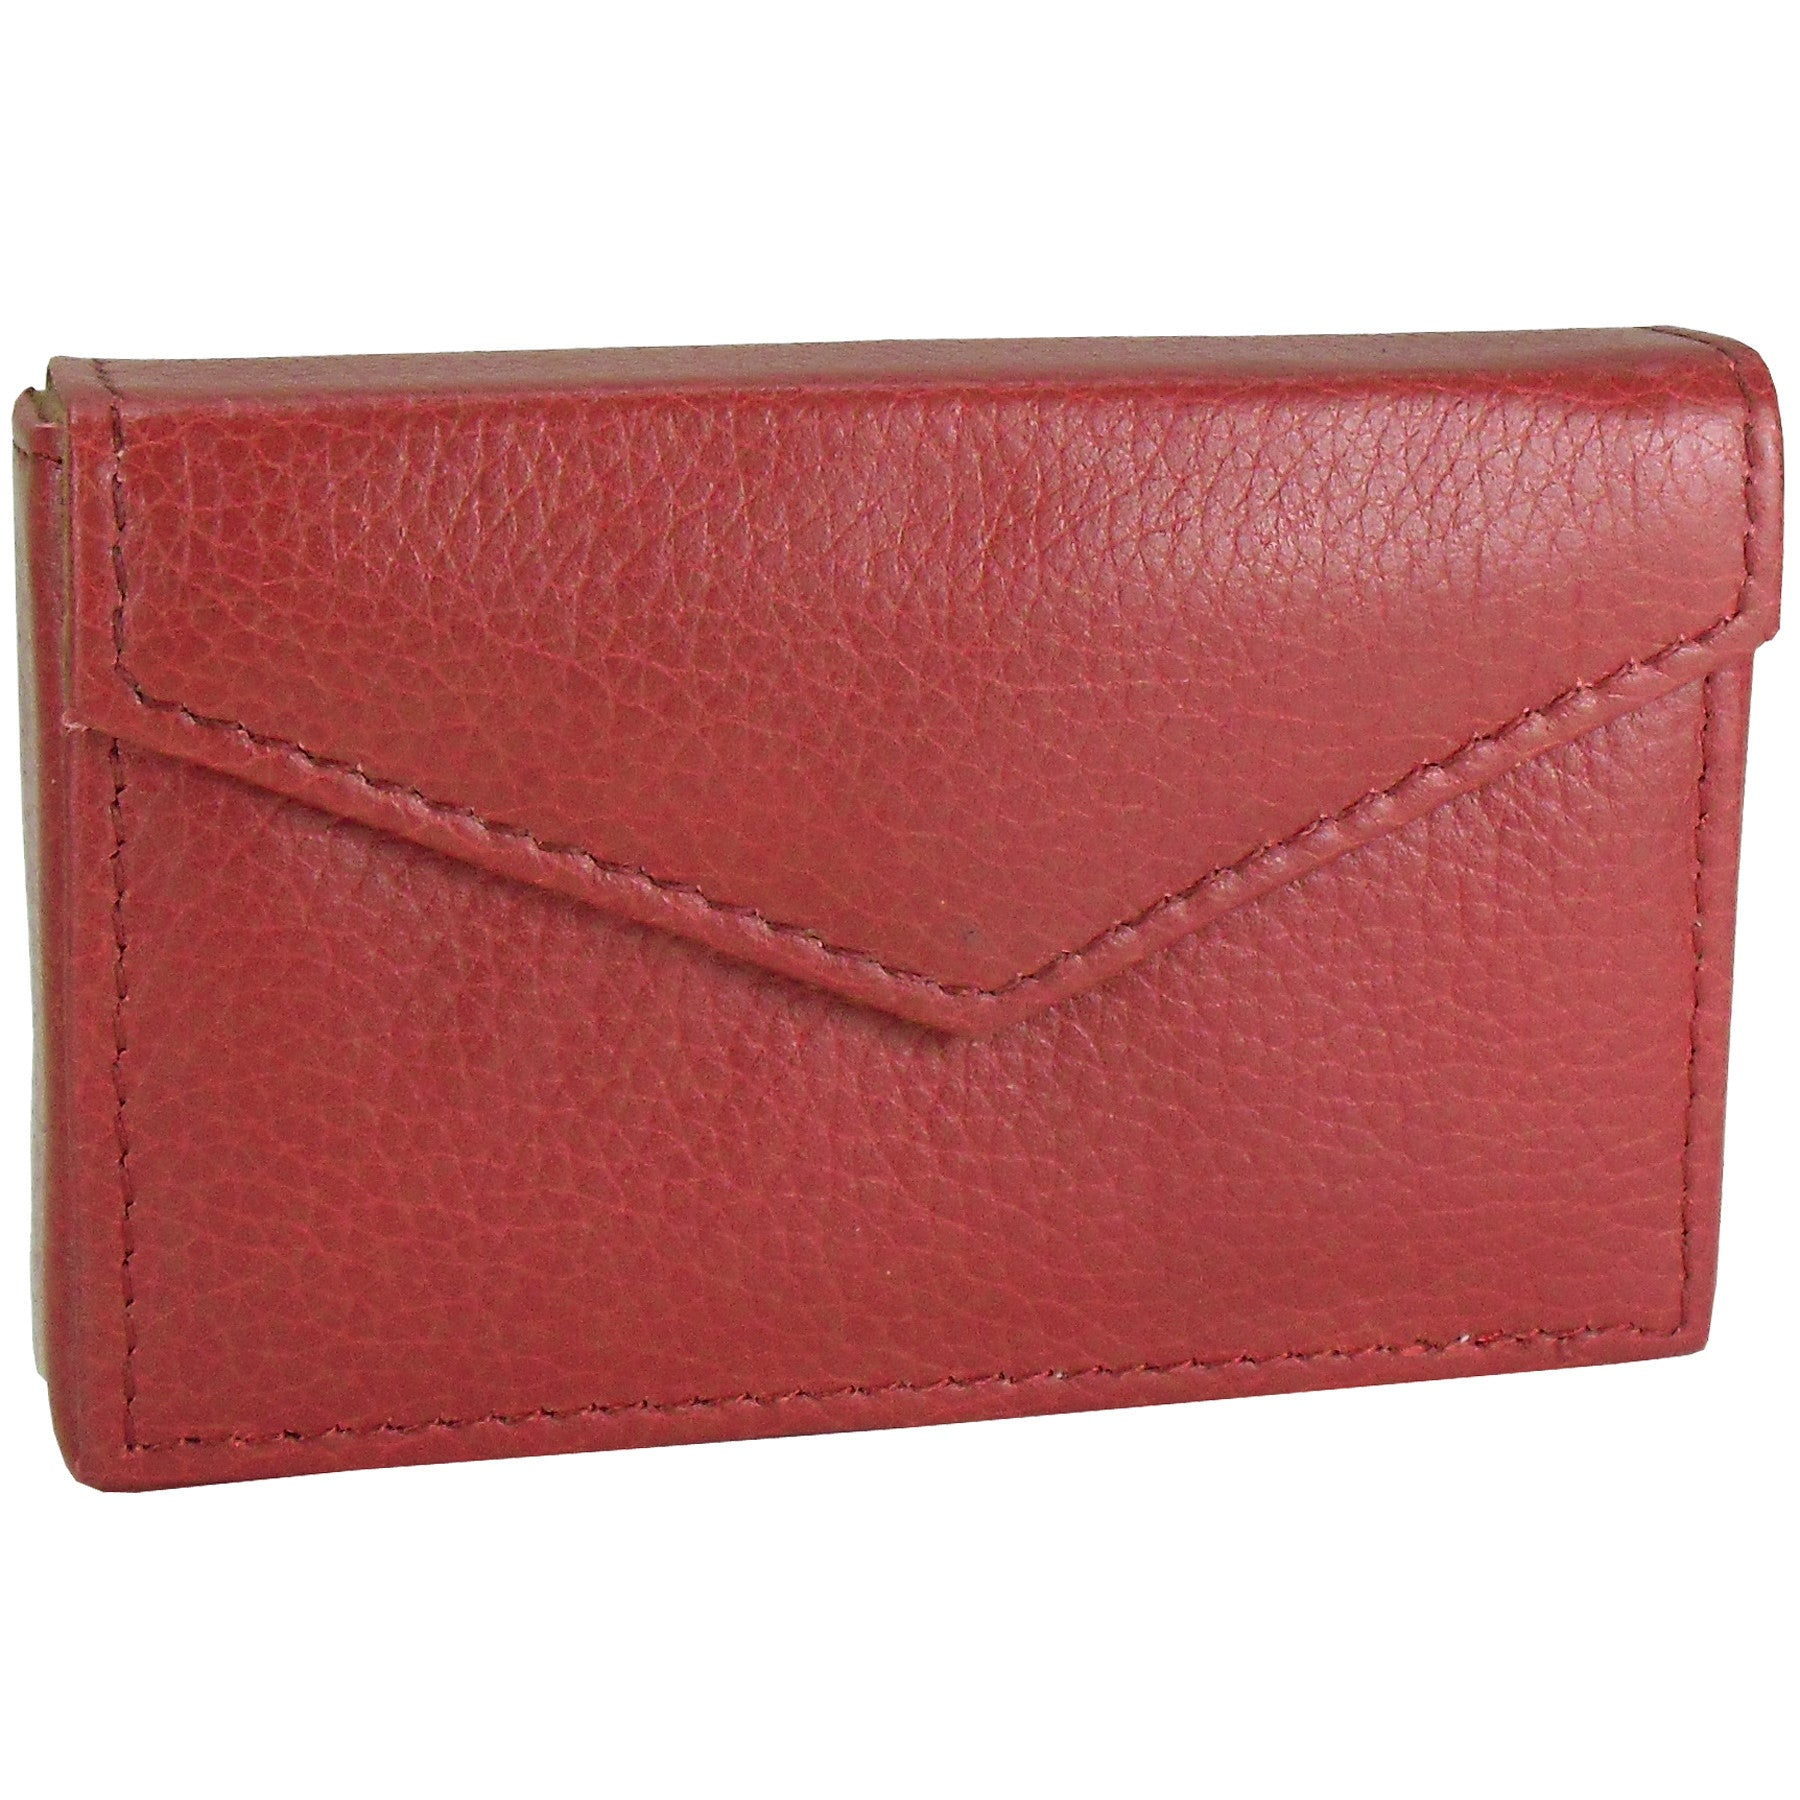 Alicia Klein leather card holder, red